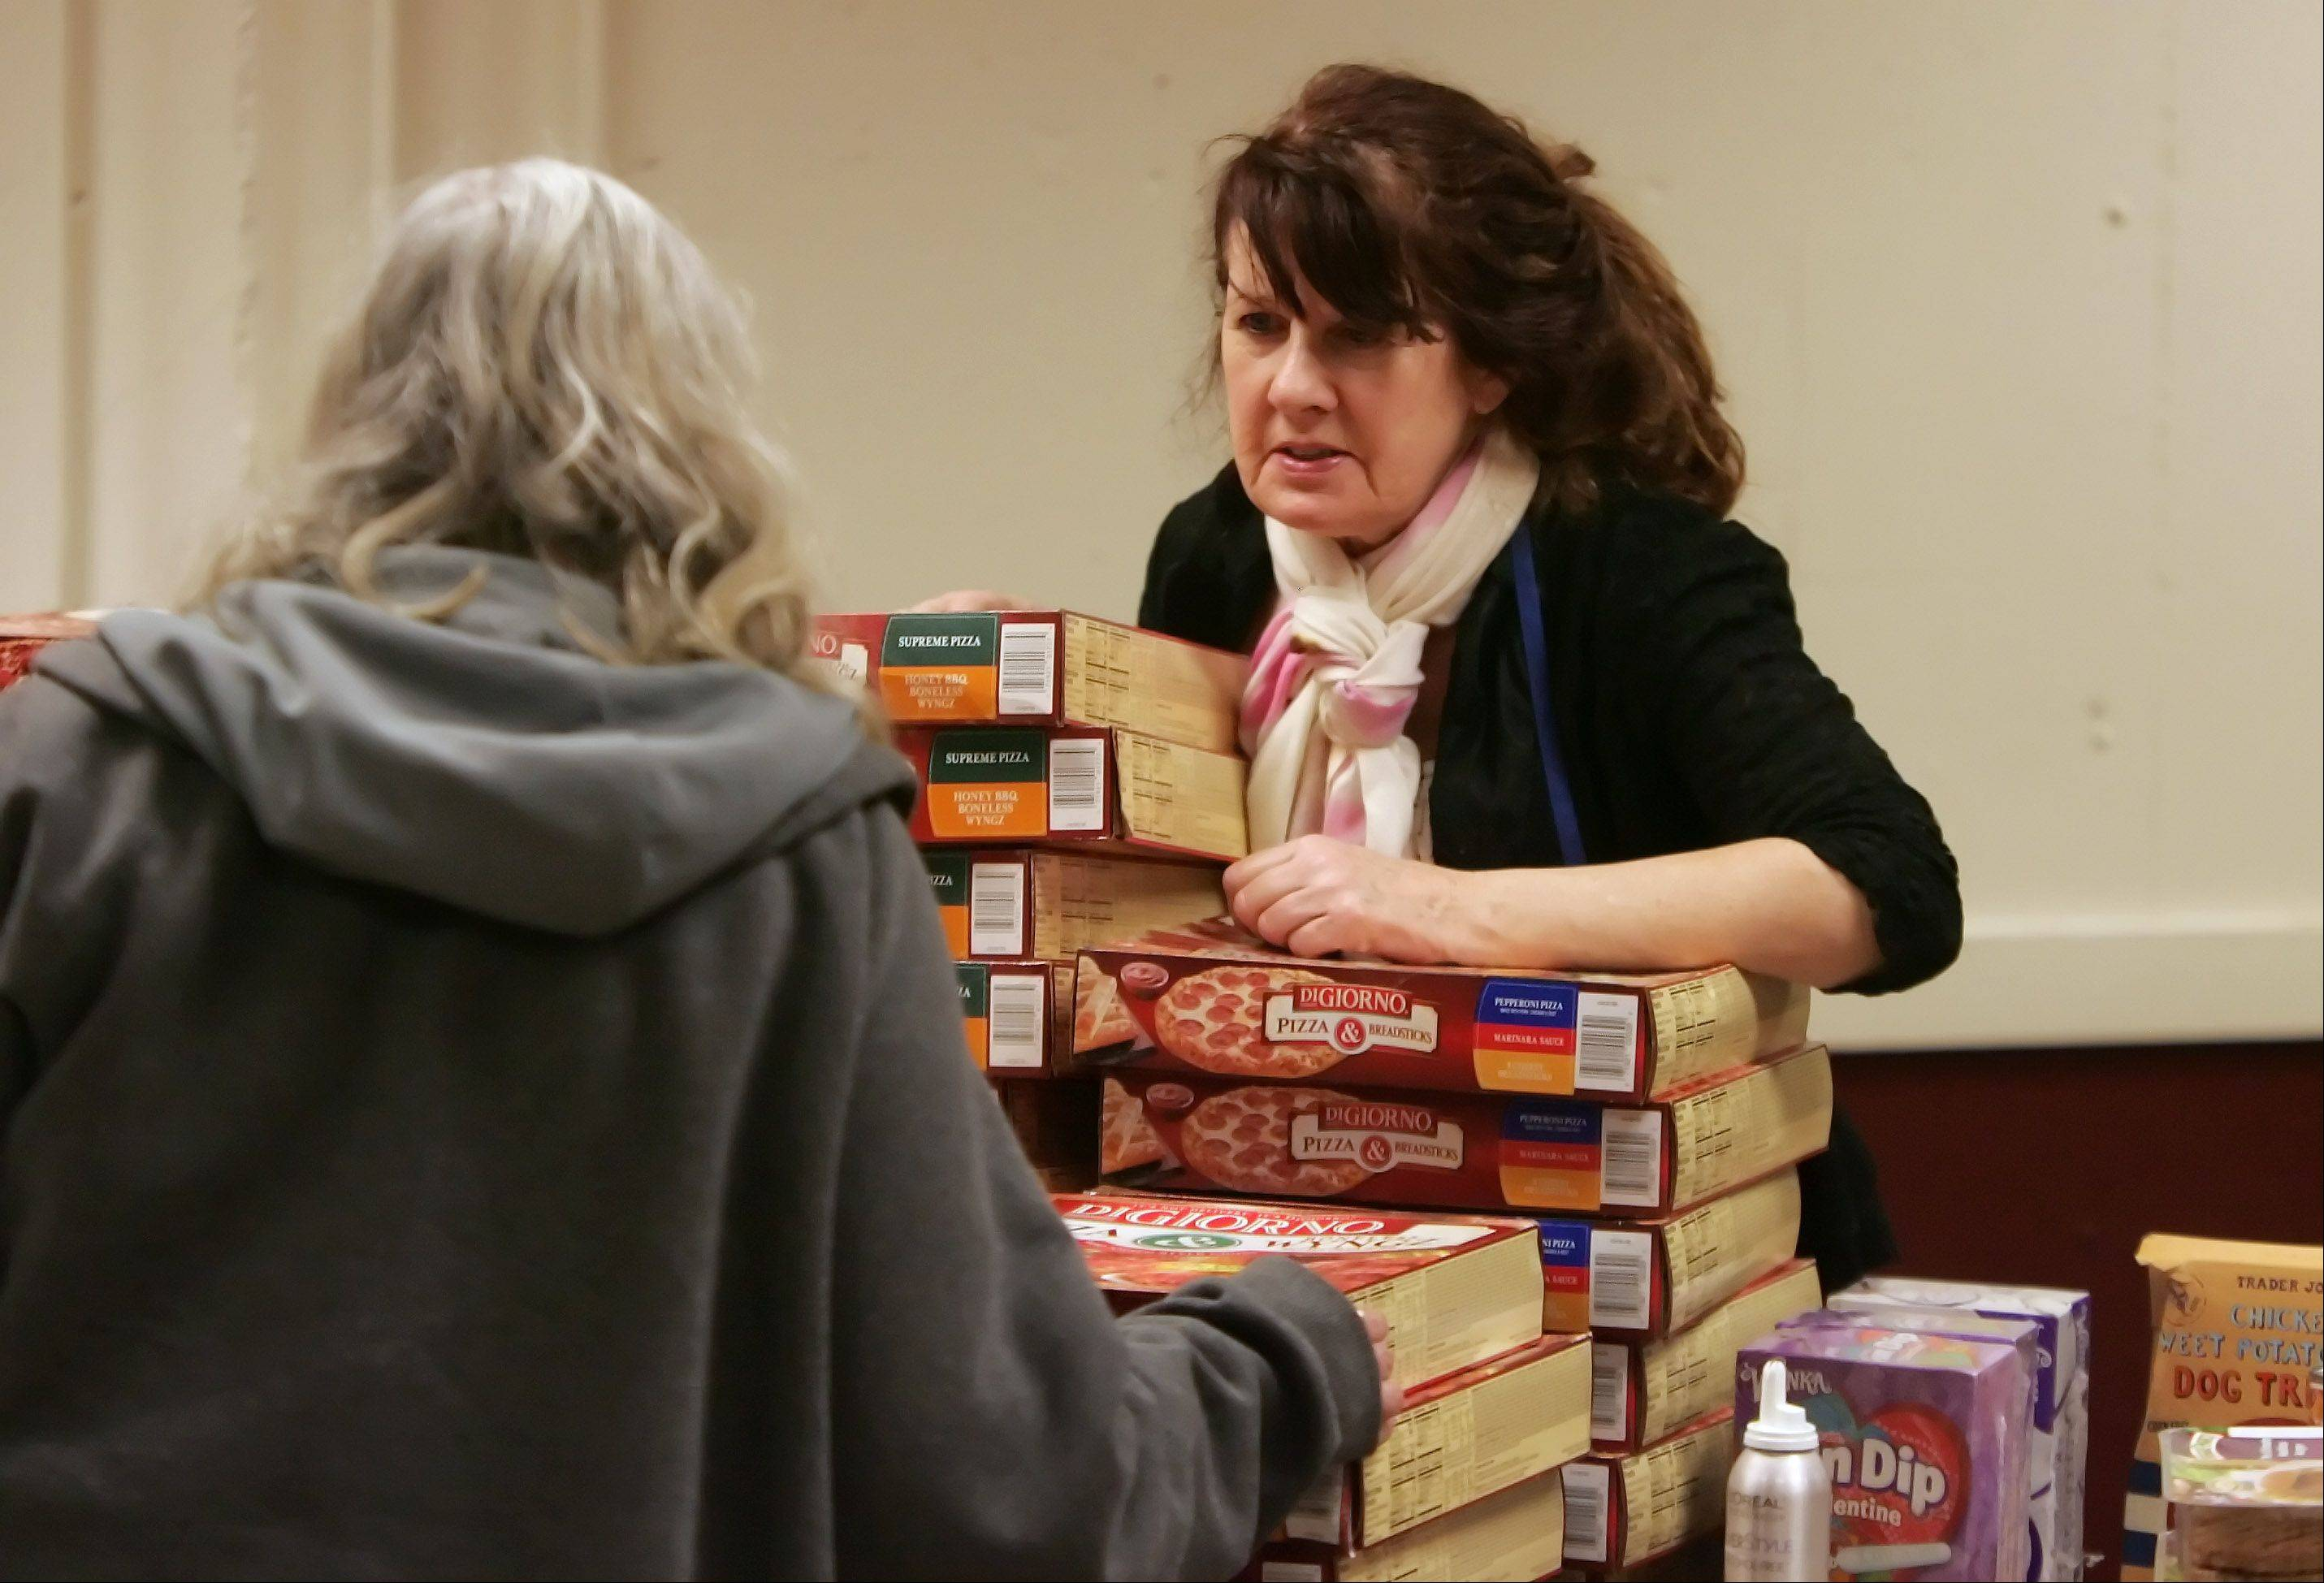 Volunteer Kathleen Murray, of Hawthorn Woods, helps a guest in the food pantry as groceries are given out by Emmaus House of Hospitality, a Lake County charity, at St. Francis de Sales Catholic Church in Lake Zurich.